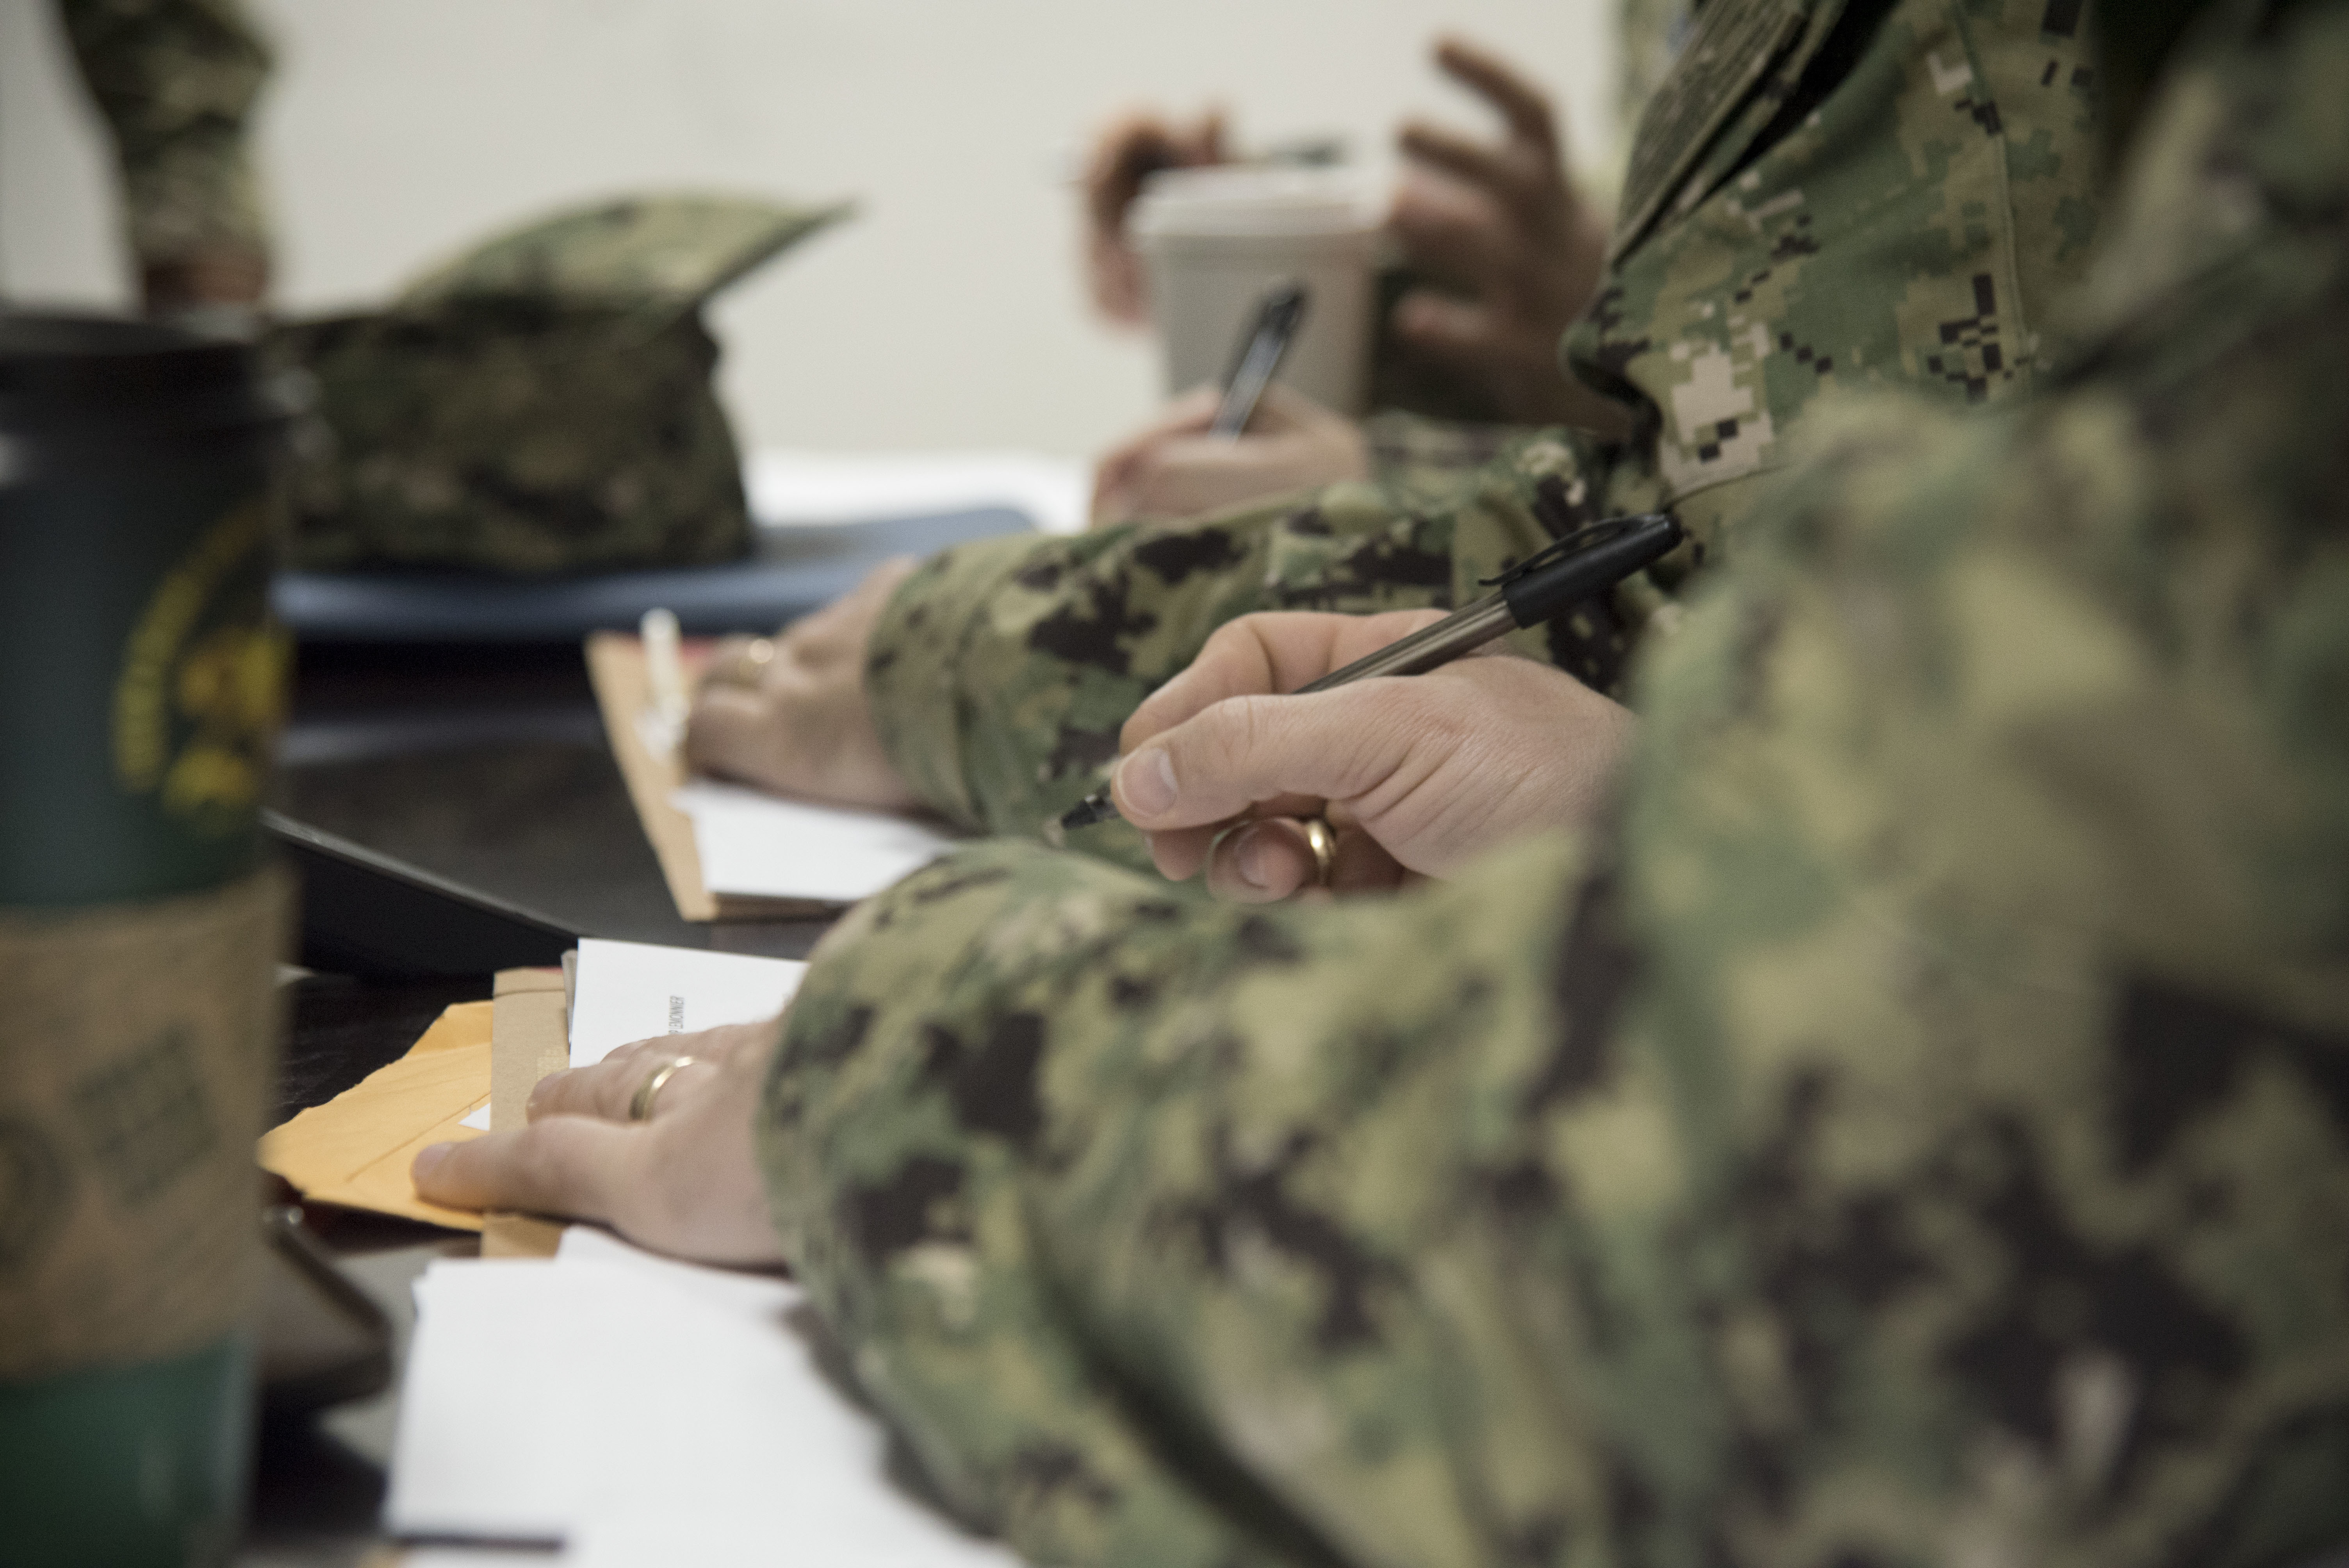 Recently-deployed Sailors complete in-processing paperwork at a mass in-processing briefing at Camp Lemonnier, Djibouti, Jan. 25, 2019. The Combined Joint Task Force-Horn of Africa's Joint Personnel Center conducts mass in-processing briefings to help Sailors complete paperwork that allows them to receive deployment benefits such as pay entitlements. (U.S. Air Force photo by Senior Airman Kirsten Brandes)